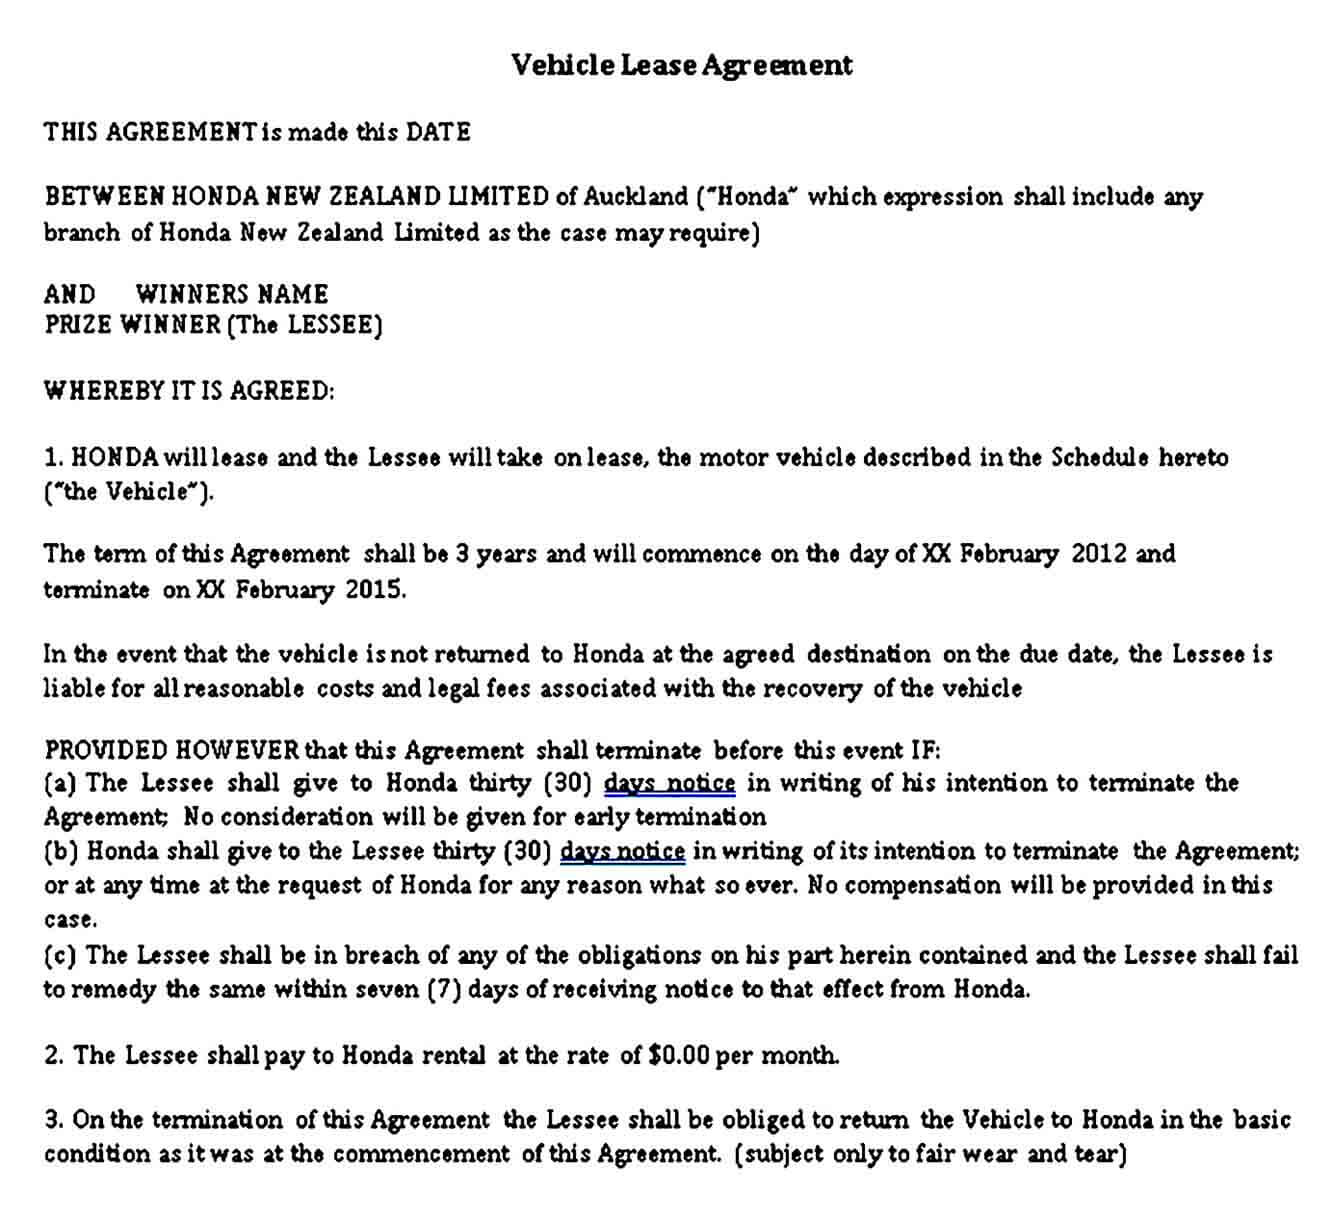 Free Vehicle Lease Agreement Template